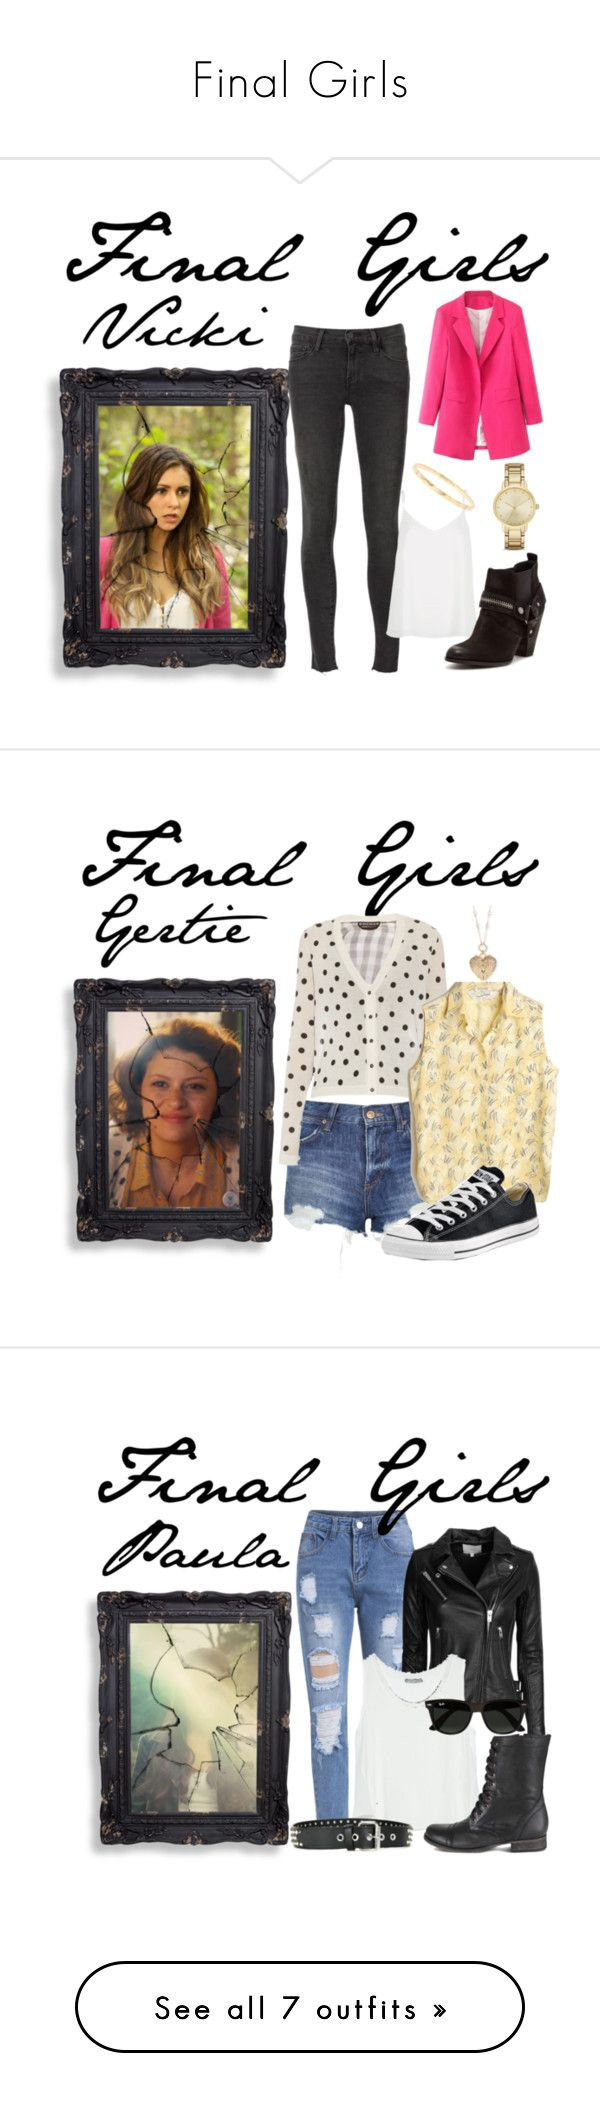 """""""Final Girls"""" by bebe6121985 on Polyvore featuring Frame Denim, River Island, Steven by Steve Madden, Ippolita, Kate Spade, women's clothing, women's fashion, women, female and woman"""